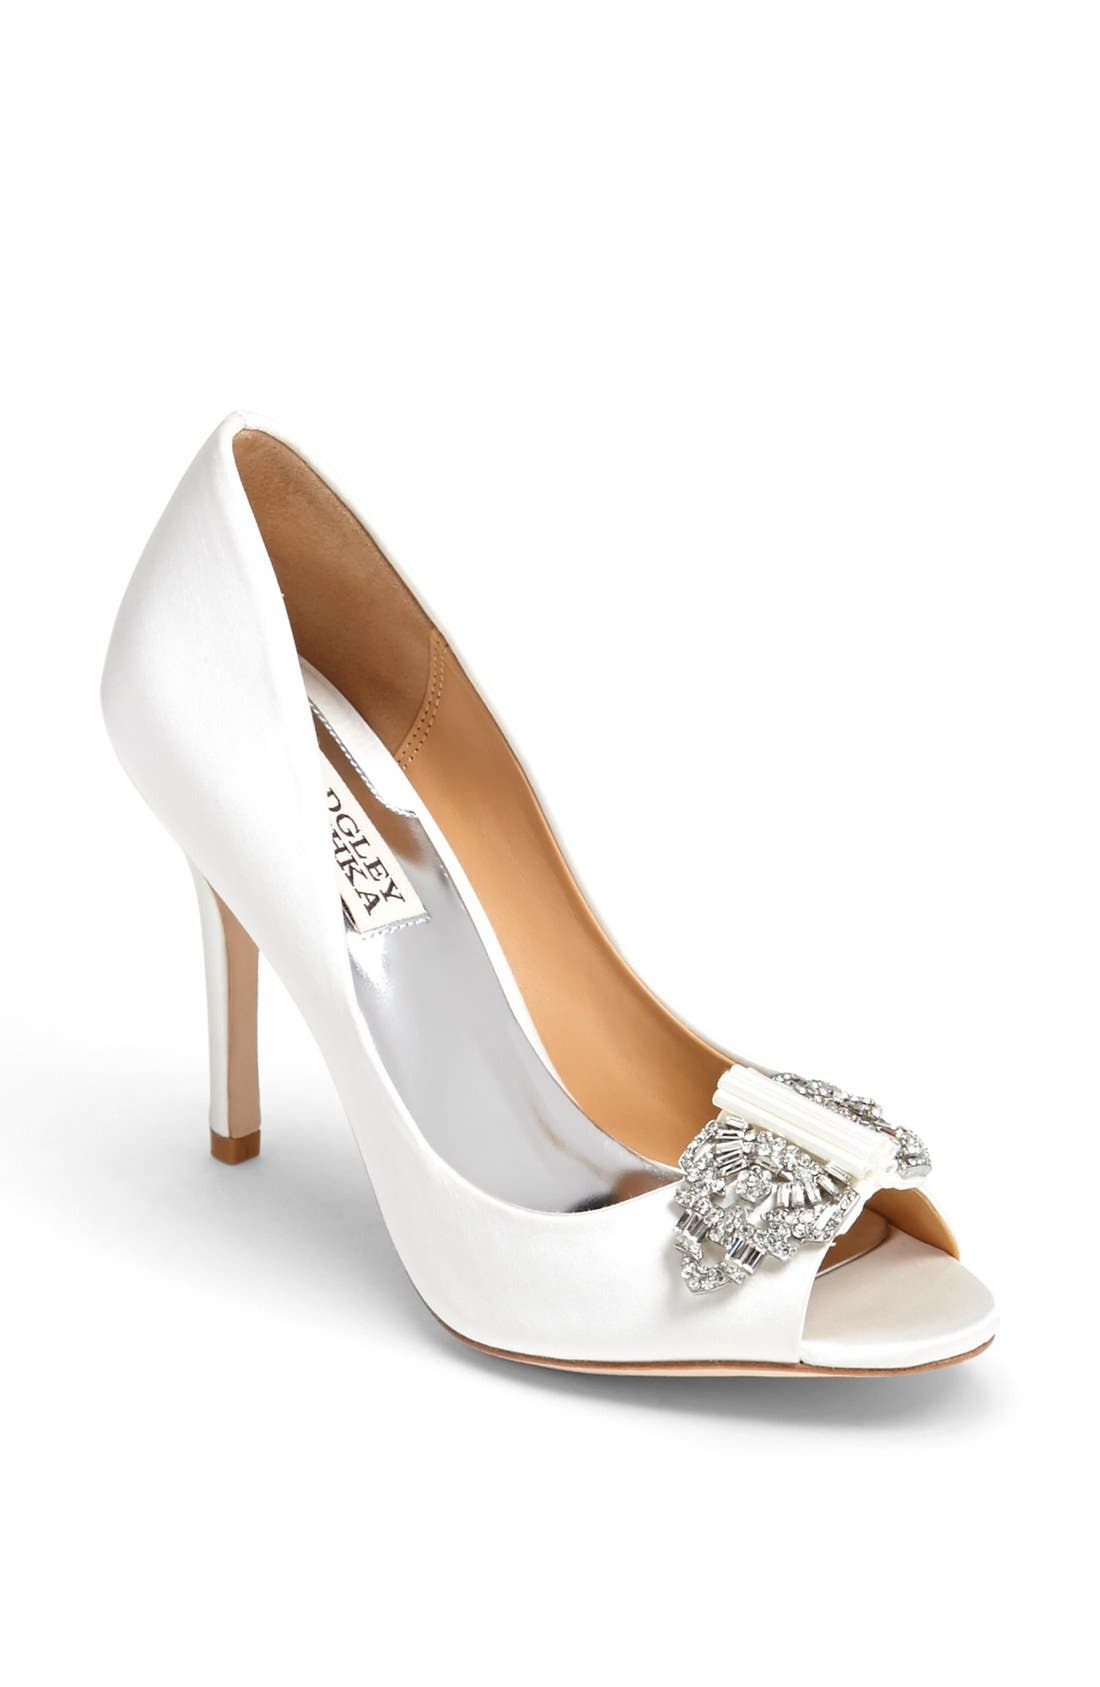 Main Image - Badgley Mischka 'Davida' Pump